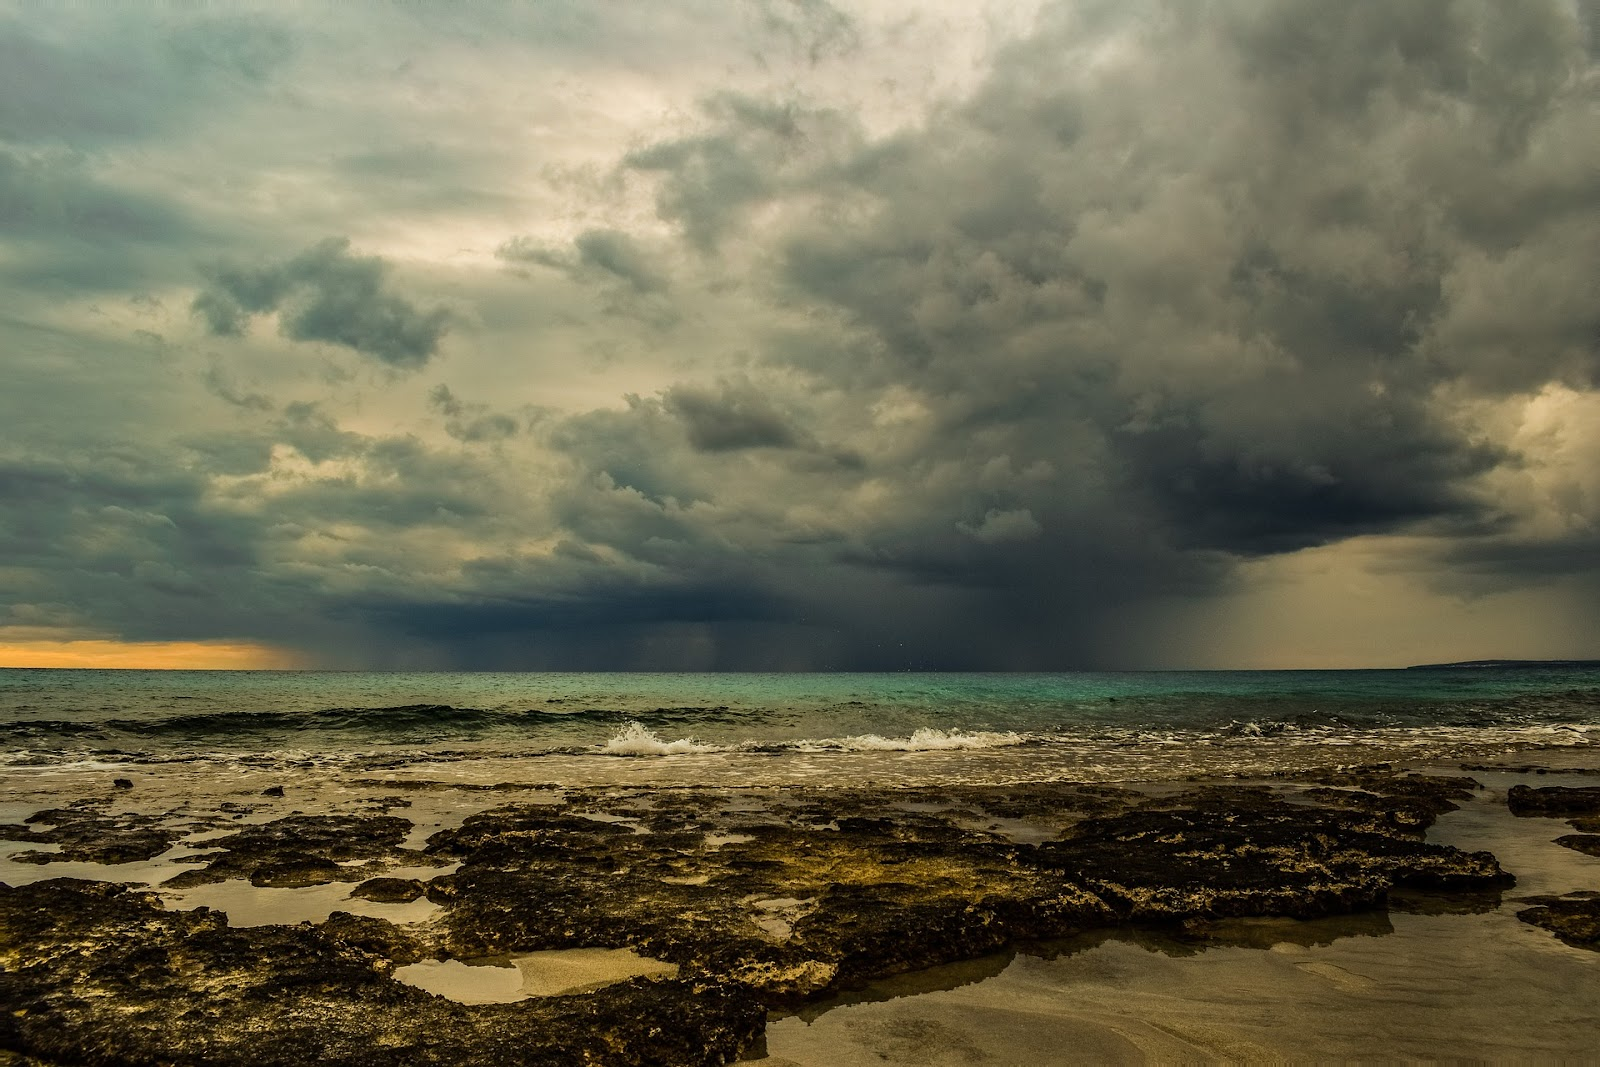 This is an image of dark rain clouds far in the distance over the ocean, as well as a beach covered in seaweed and tidepools. The ocean and weather are both studied through different branches of geoscience.